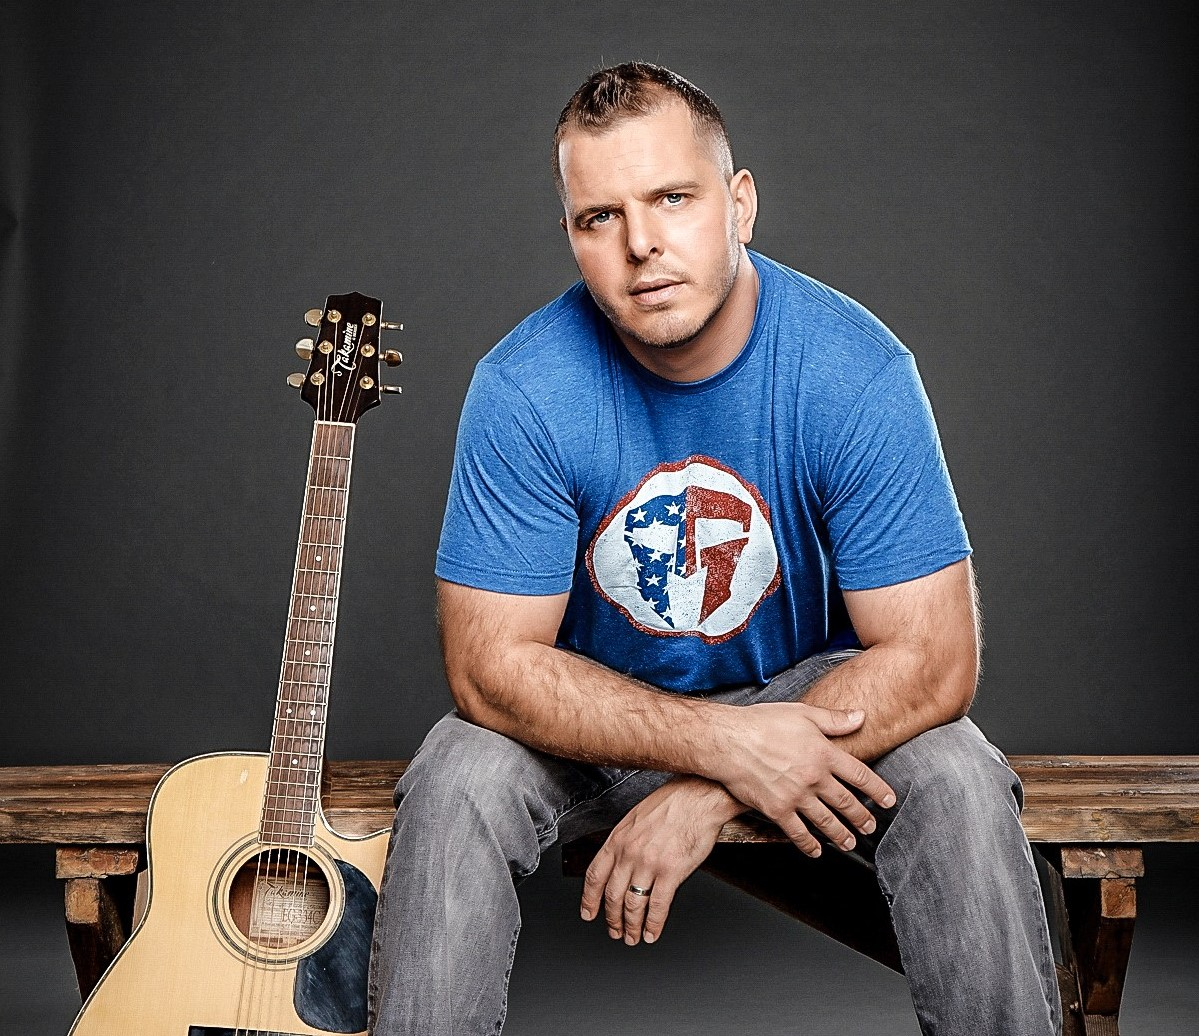 Marine Vet Fighting PTSD One Song at a Time